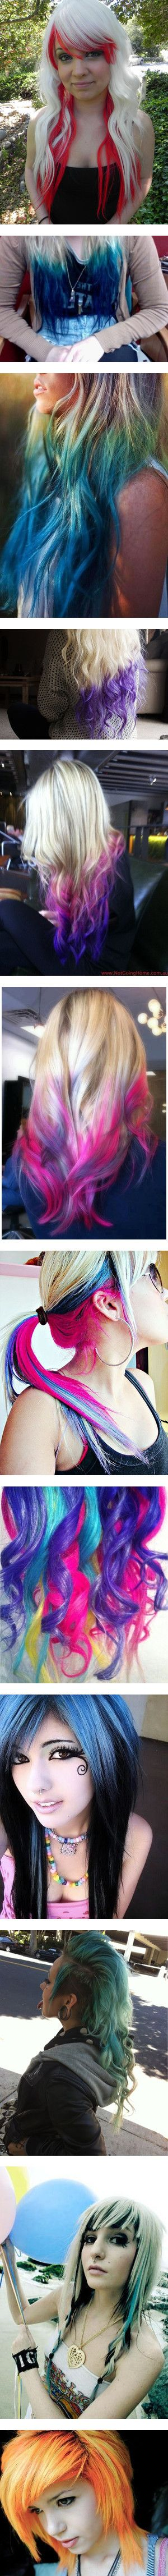 best Barbie Rock images on Pinterest Colourful hair Goth beauty